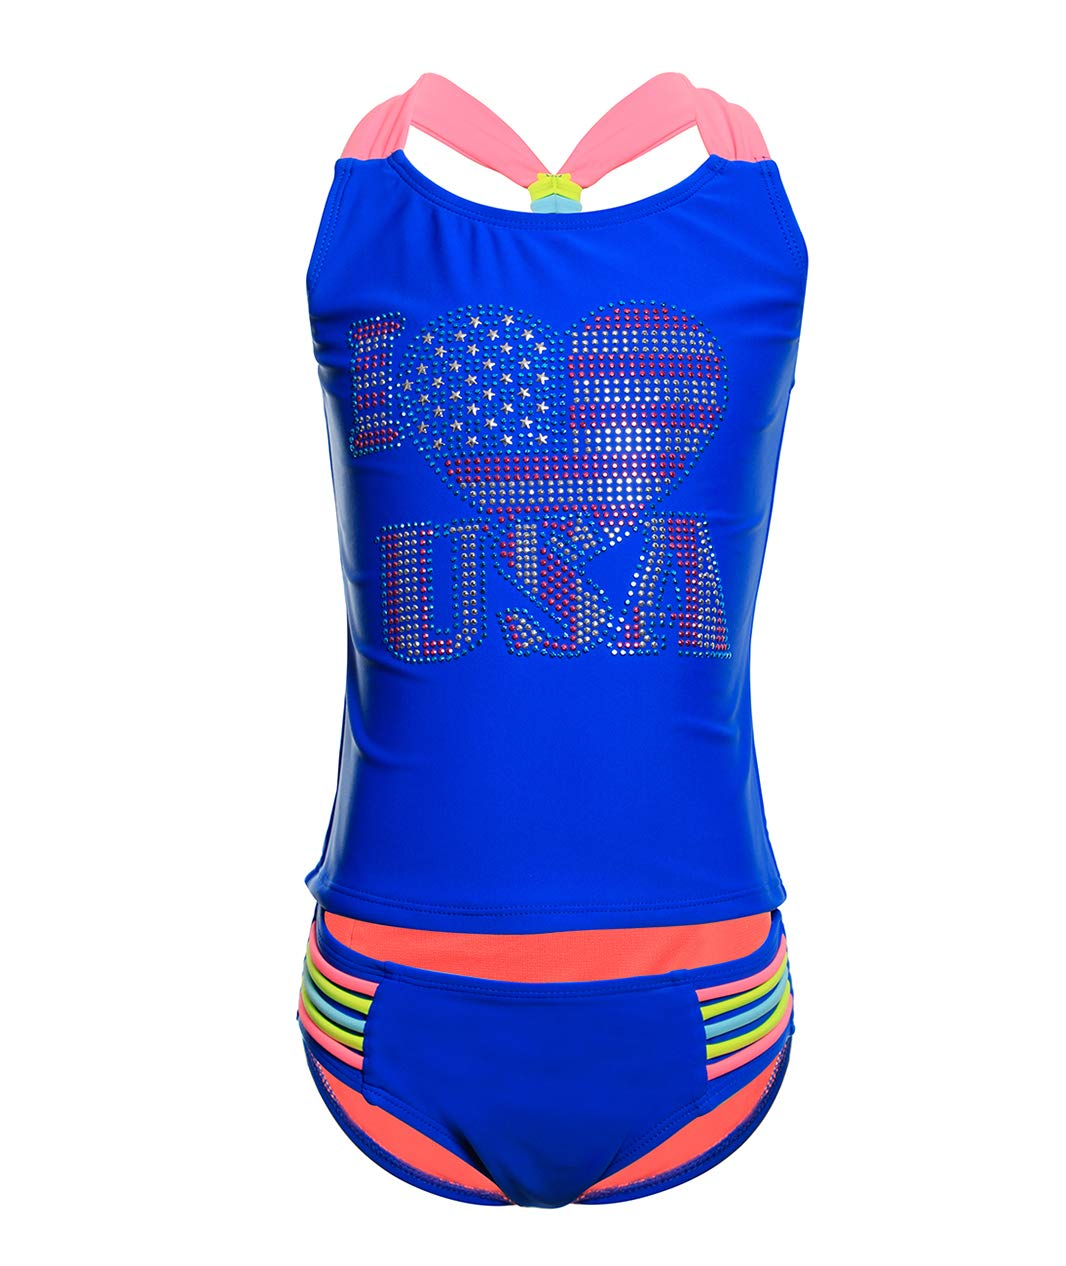 BELLOO Girl's Cross Straps Two Piece Tankini Swimsuit Navy Blue, Size 4-5